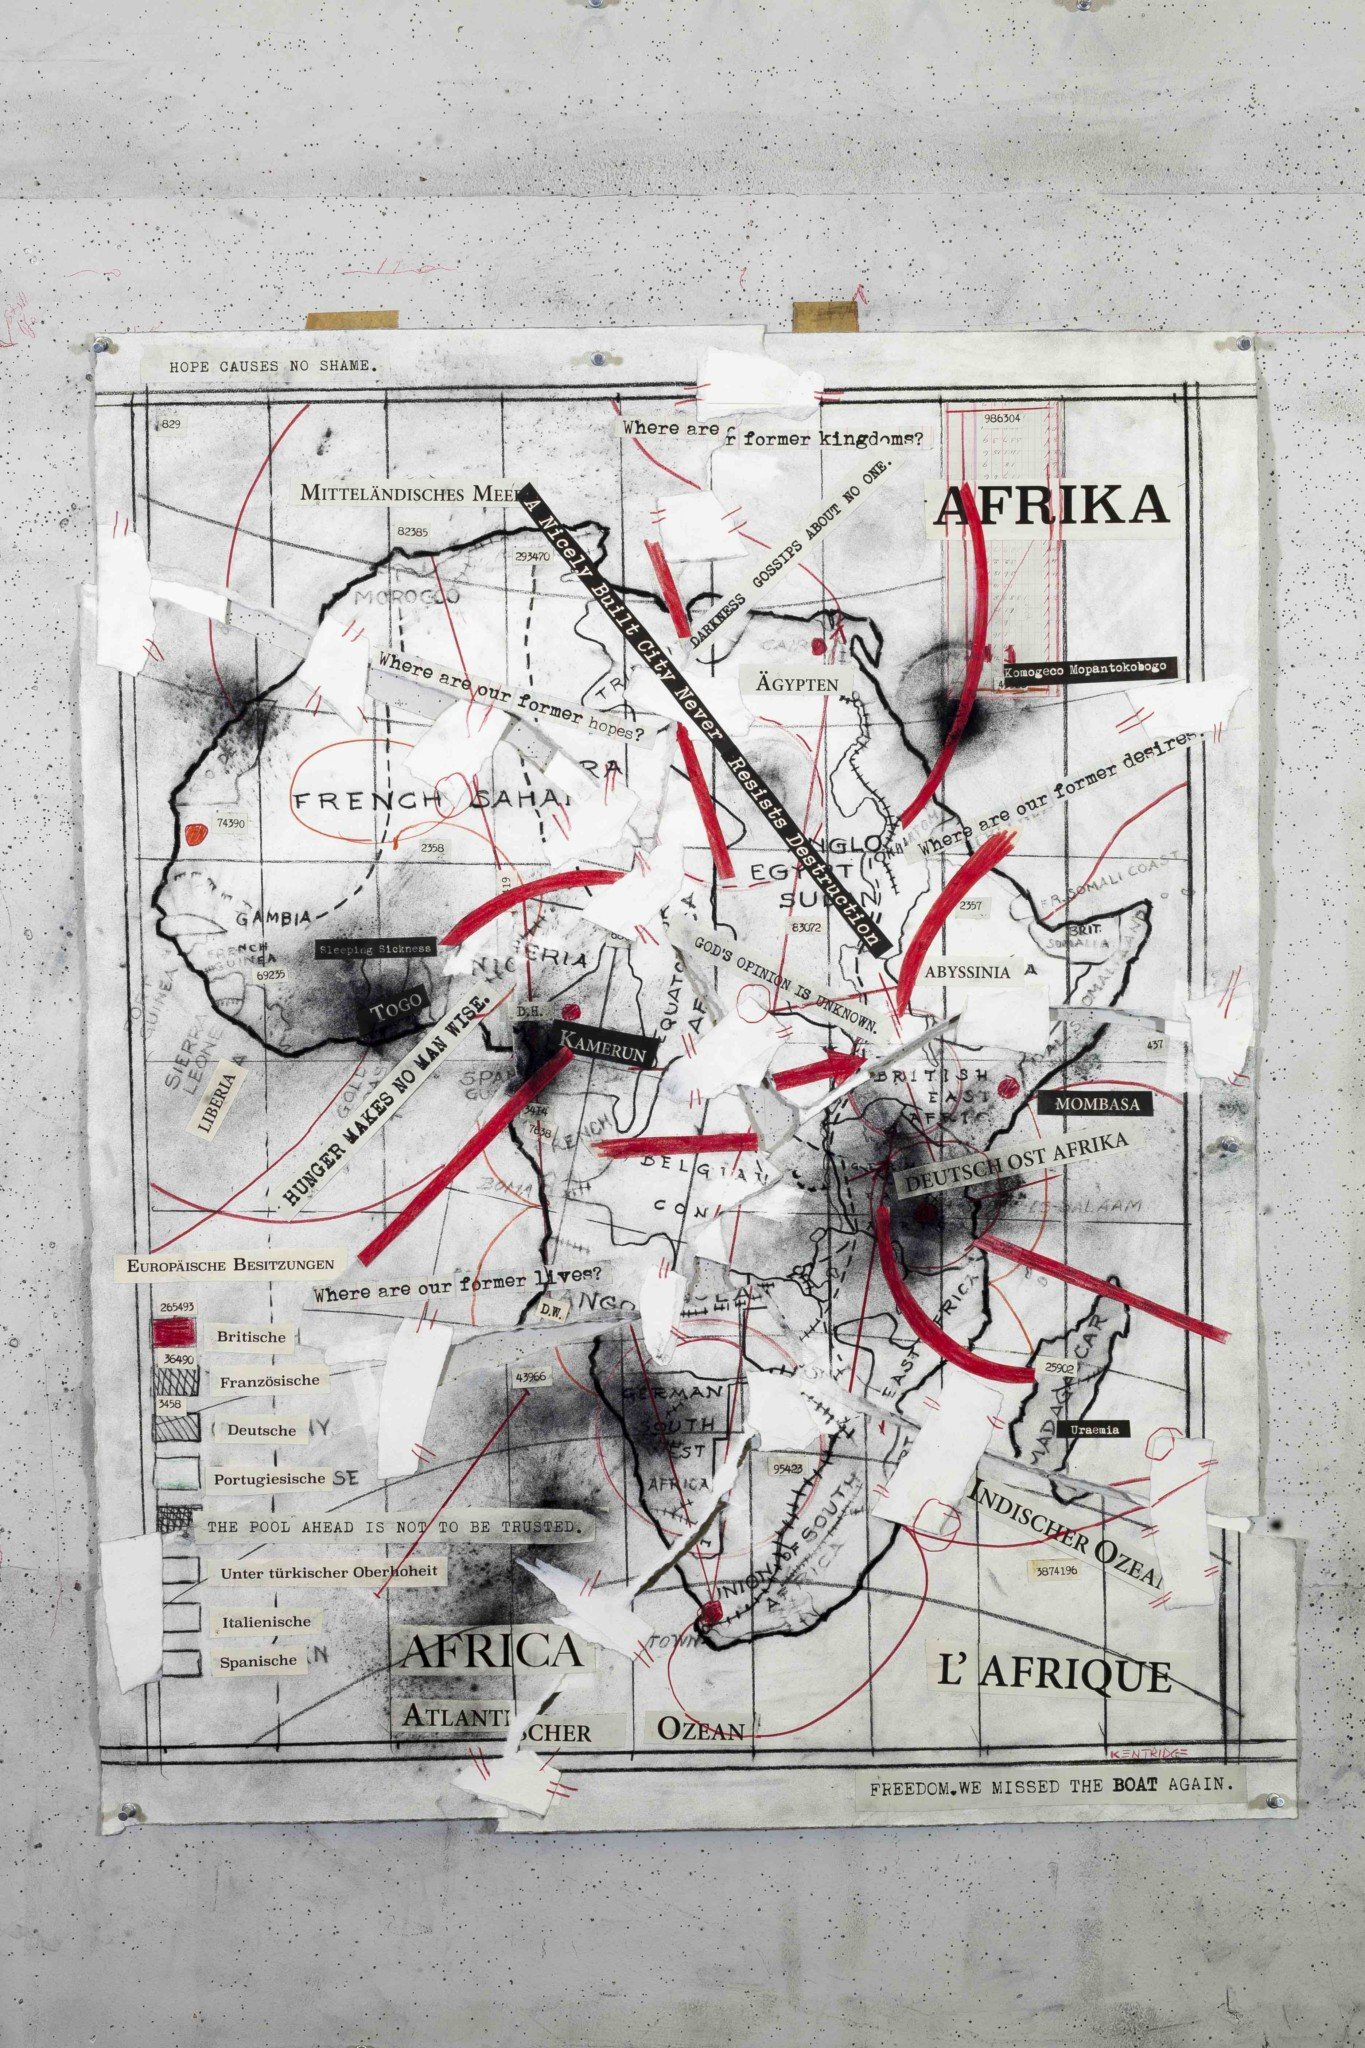 William Kentridge, Drawing from The Head and the Load (Afrika-Africa-L'Afrique), 2018 Charcoal, red pencil, digital print and paper collage, 88.5 x 78.5 cm. Courtesy Goodman Gallery